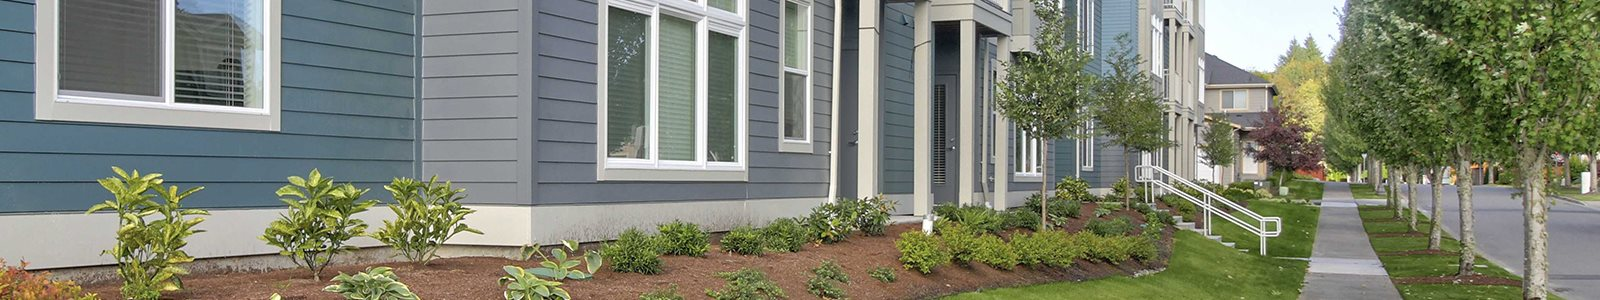 Beautiful Grounds at  Briggs Village Apartments in OLYMPIA, WA 98501